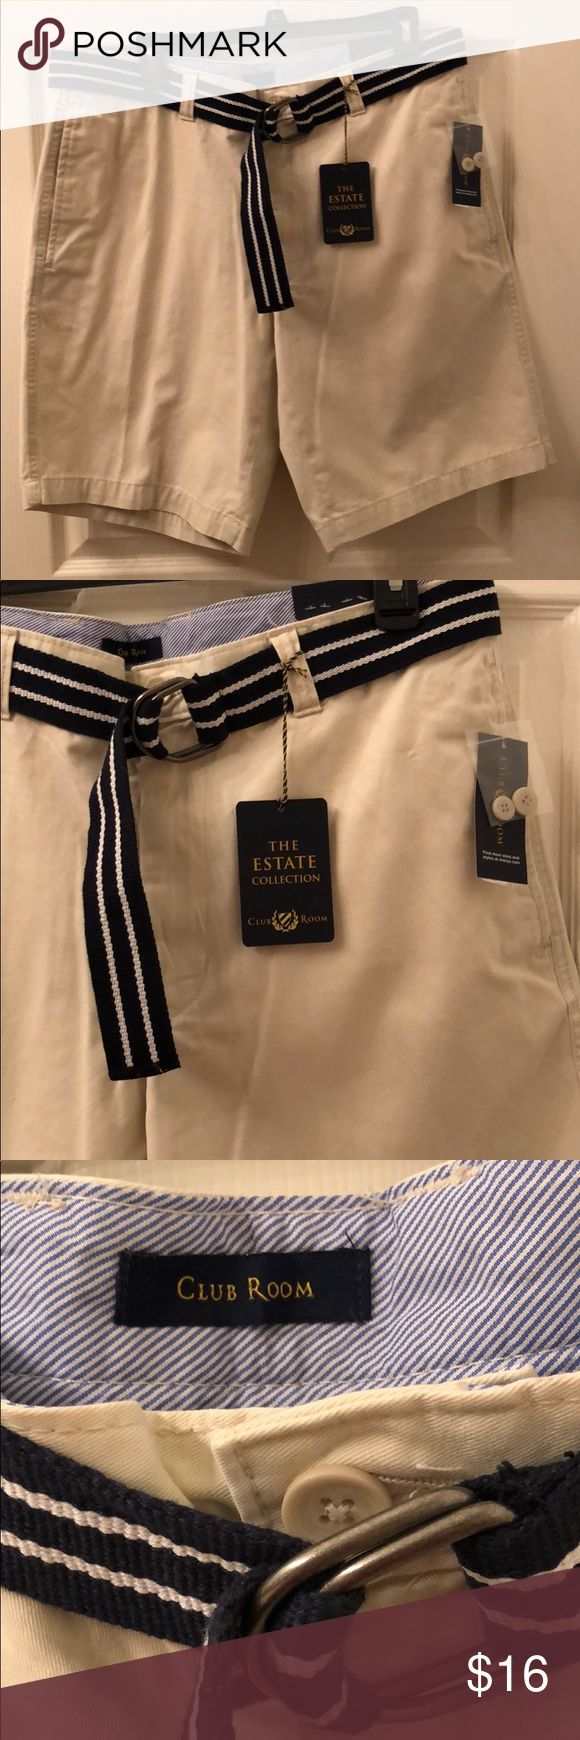 Club Room light beige shorts Men's 36 New with tag Club Room The Estate Collection Mens Short . Beige . Size 36 . New with tags . Black w white stipe loop belt included . Perfect to add to your spring wardrobe Club Room Shorts Flat Front